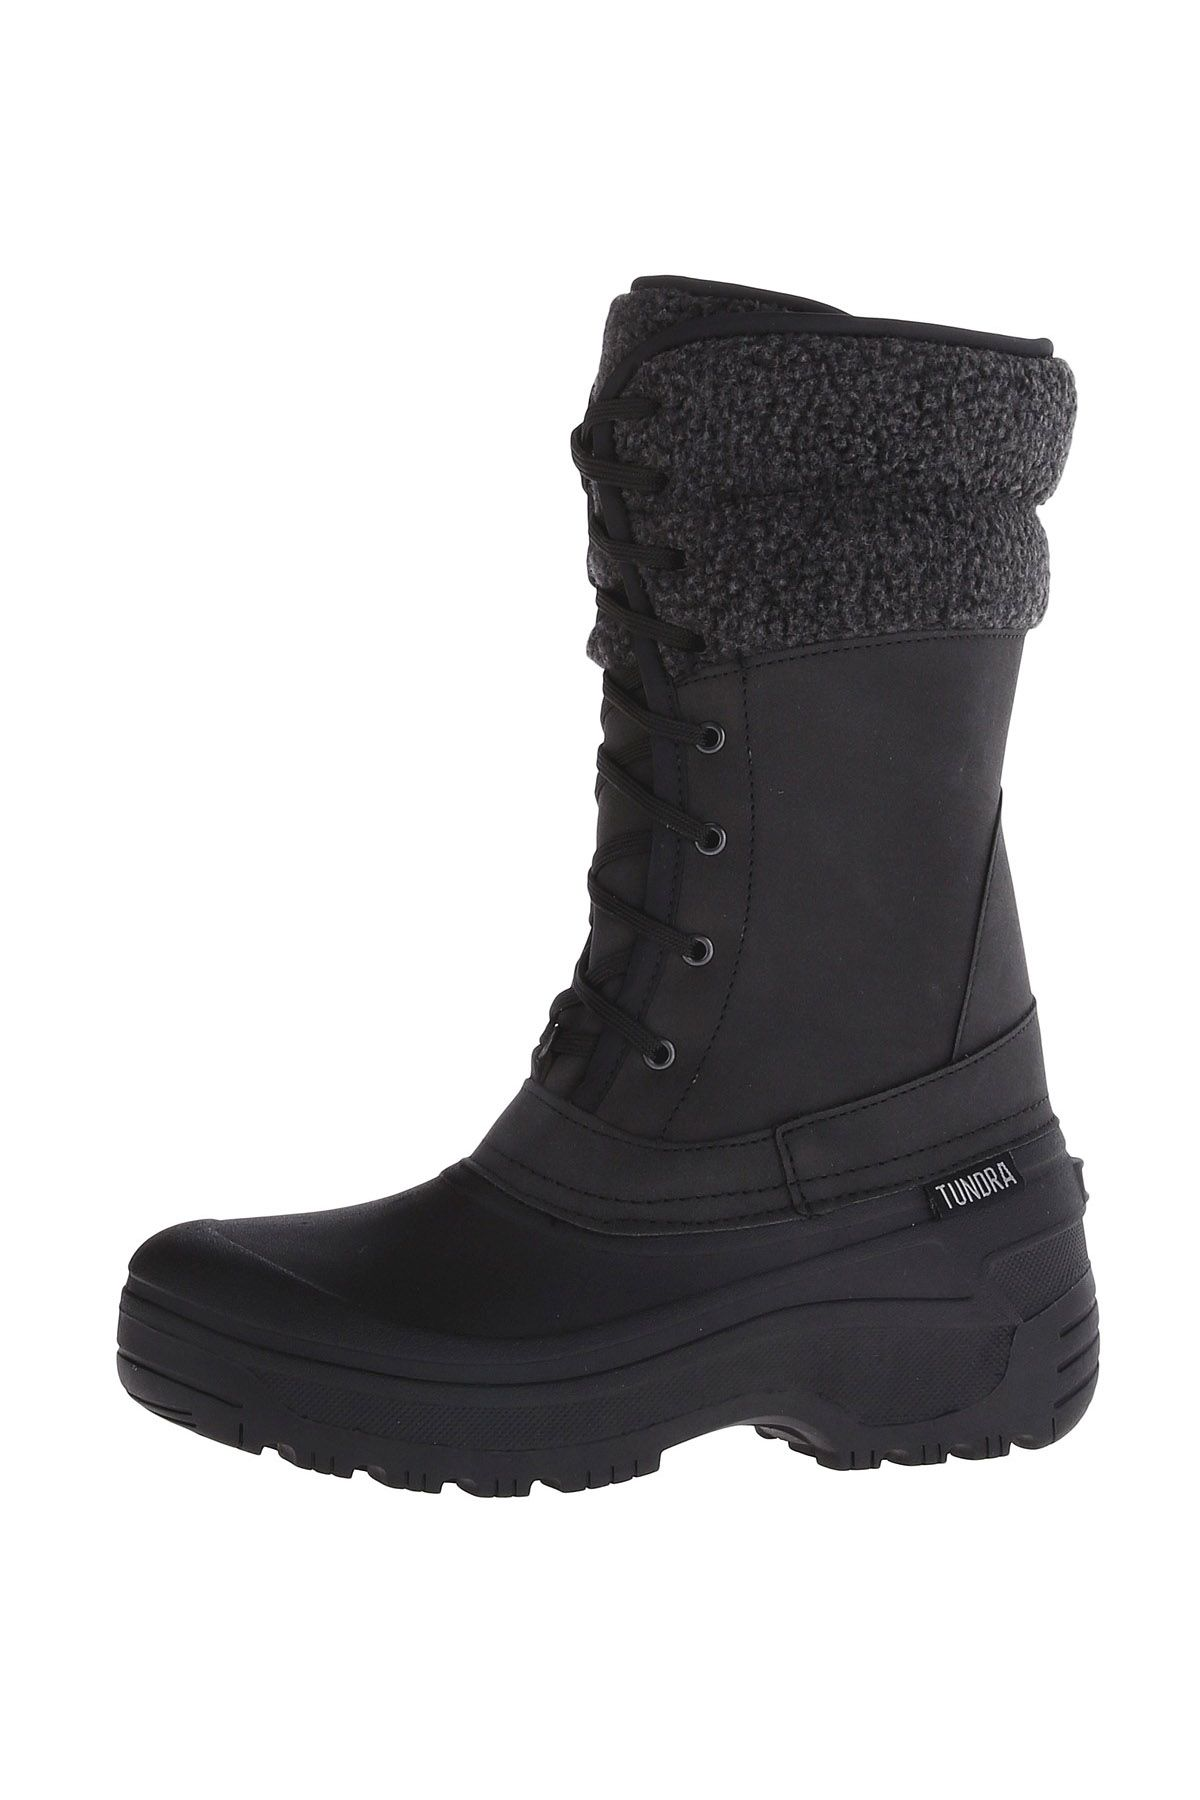 brown the zappos shoes boots timberland short for leisure womens comforter style walking travel most comfortable comfy